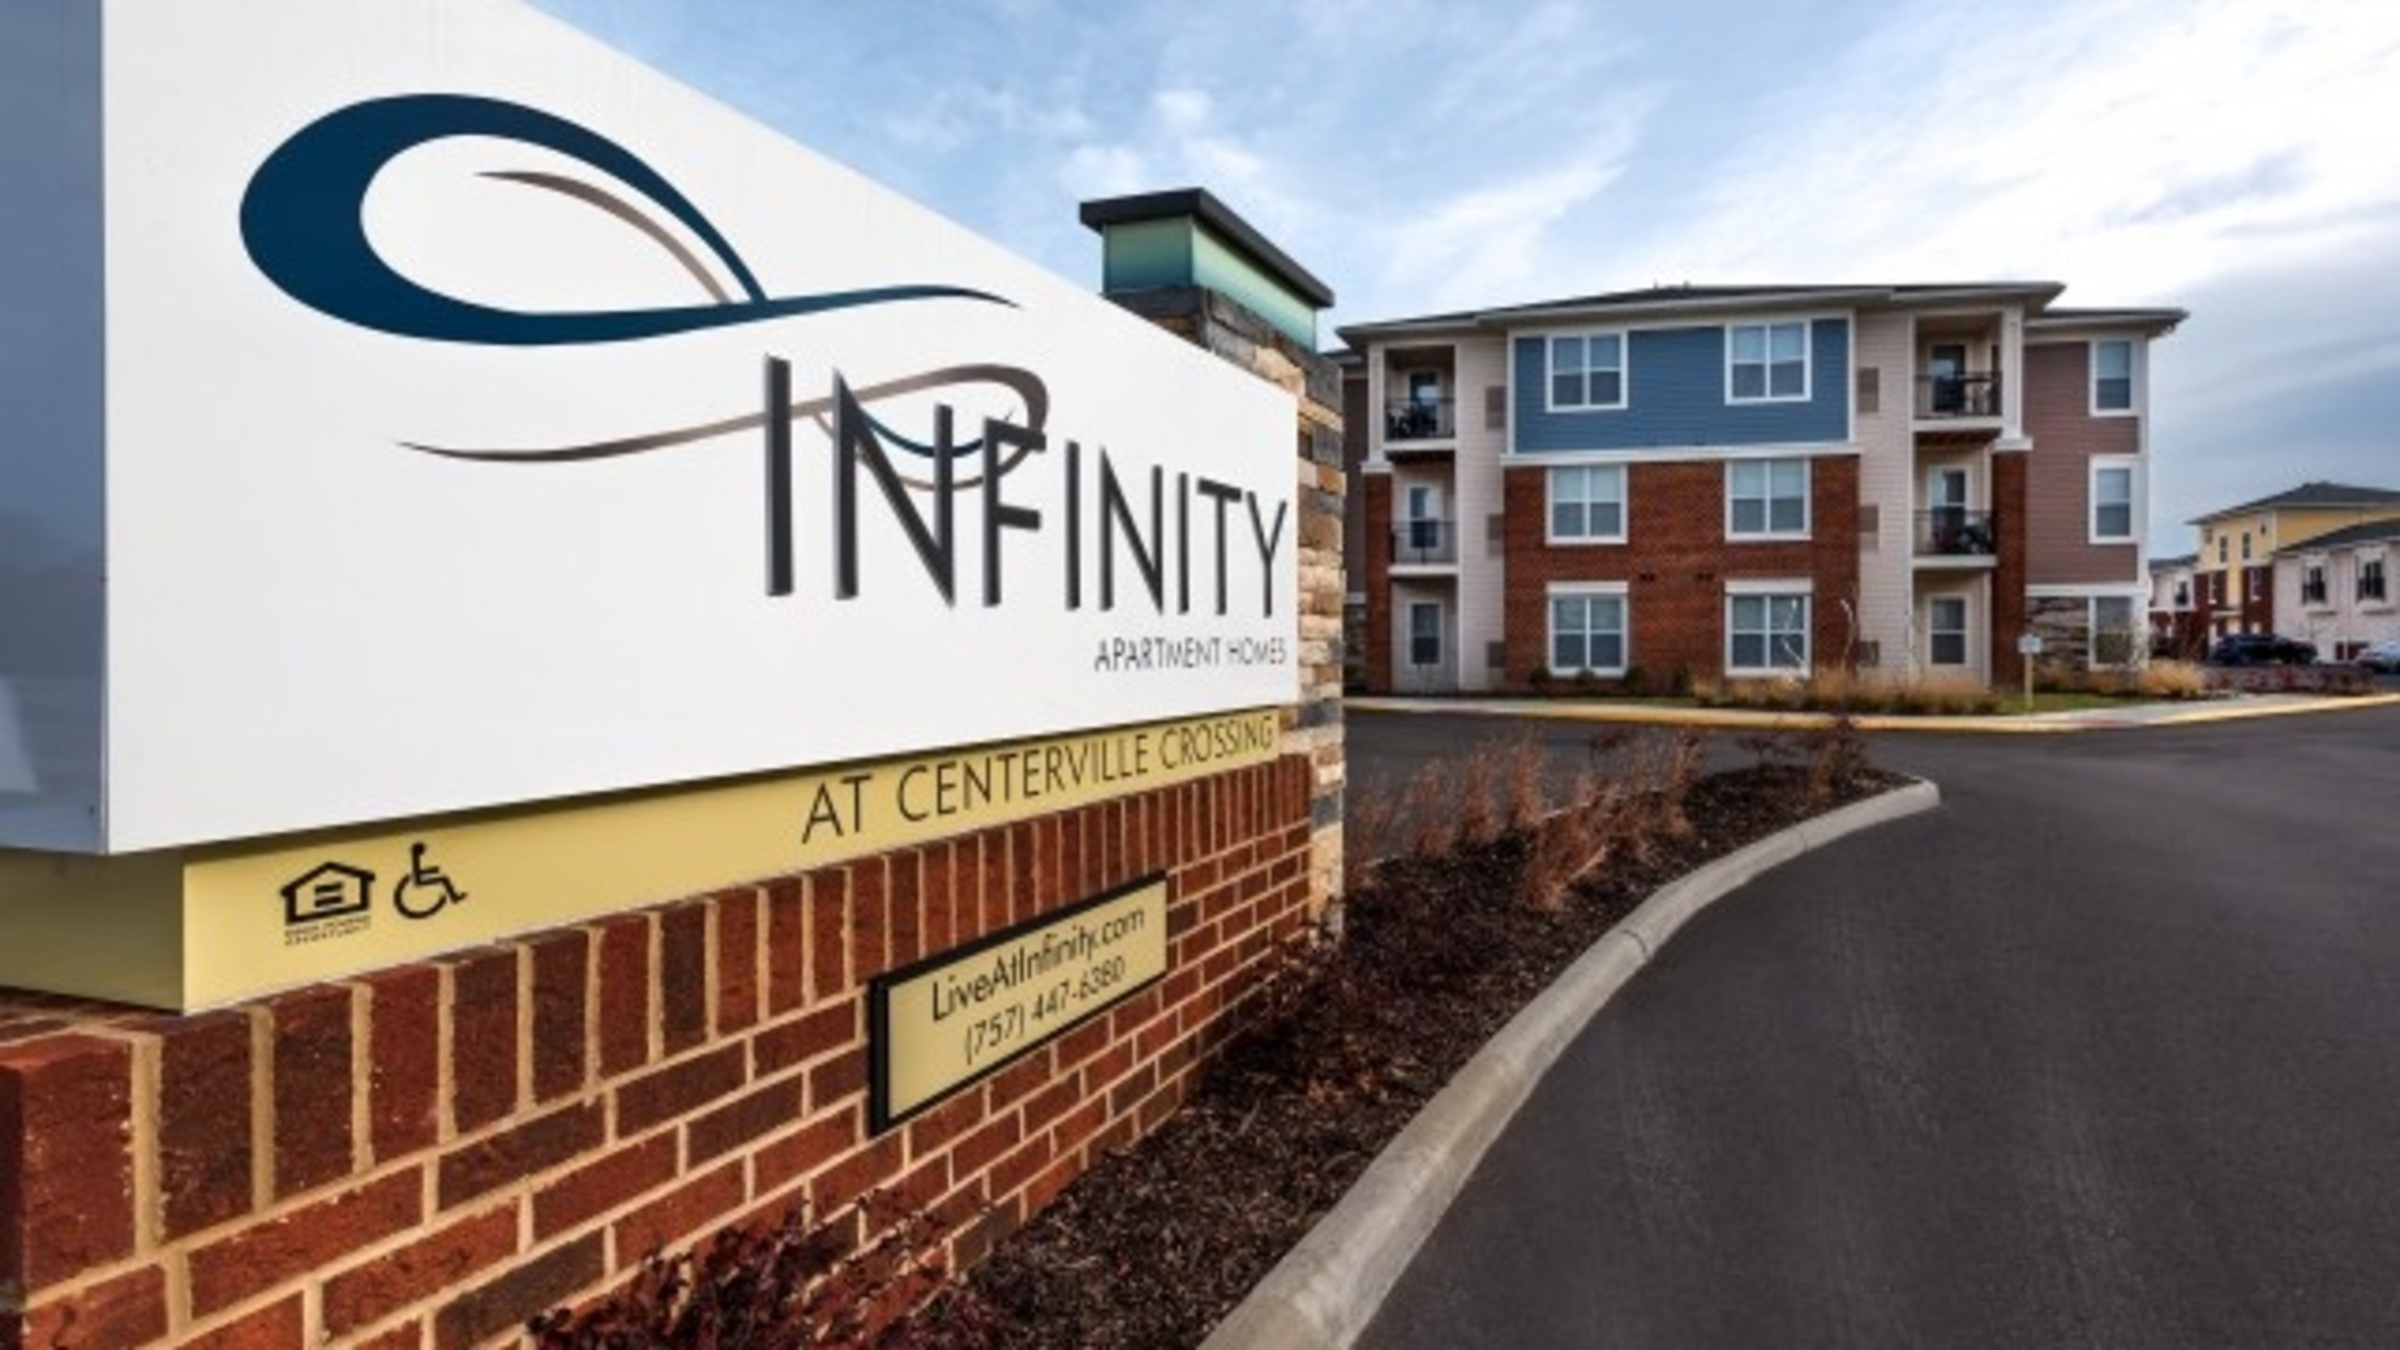 Landing Furnished Apartment Infinity at Centerville Crossing